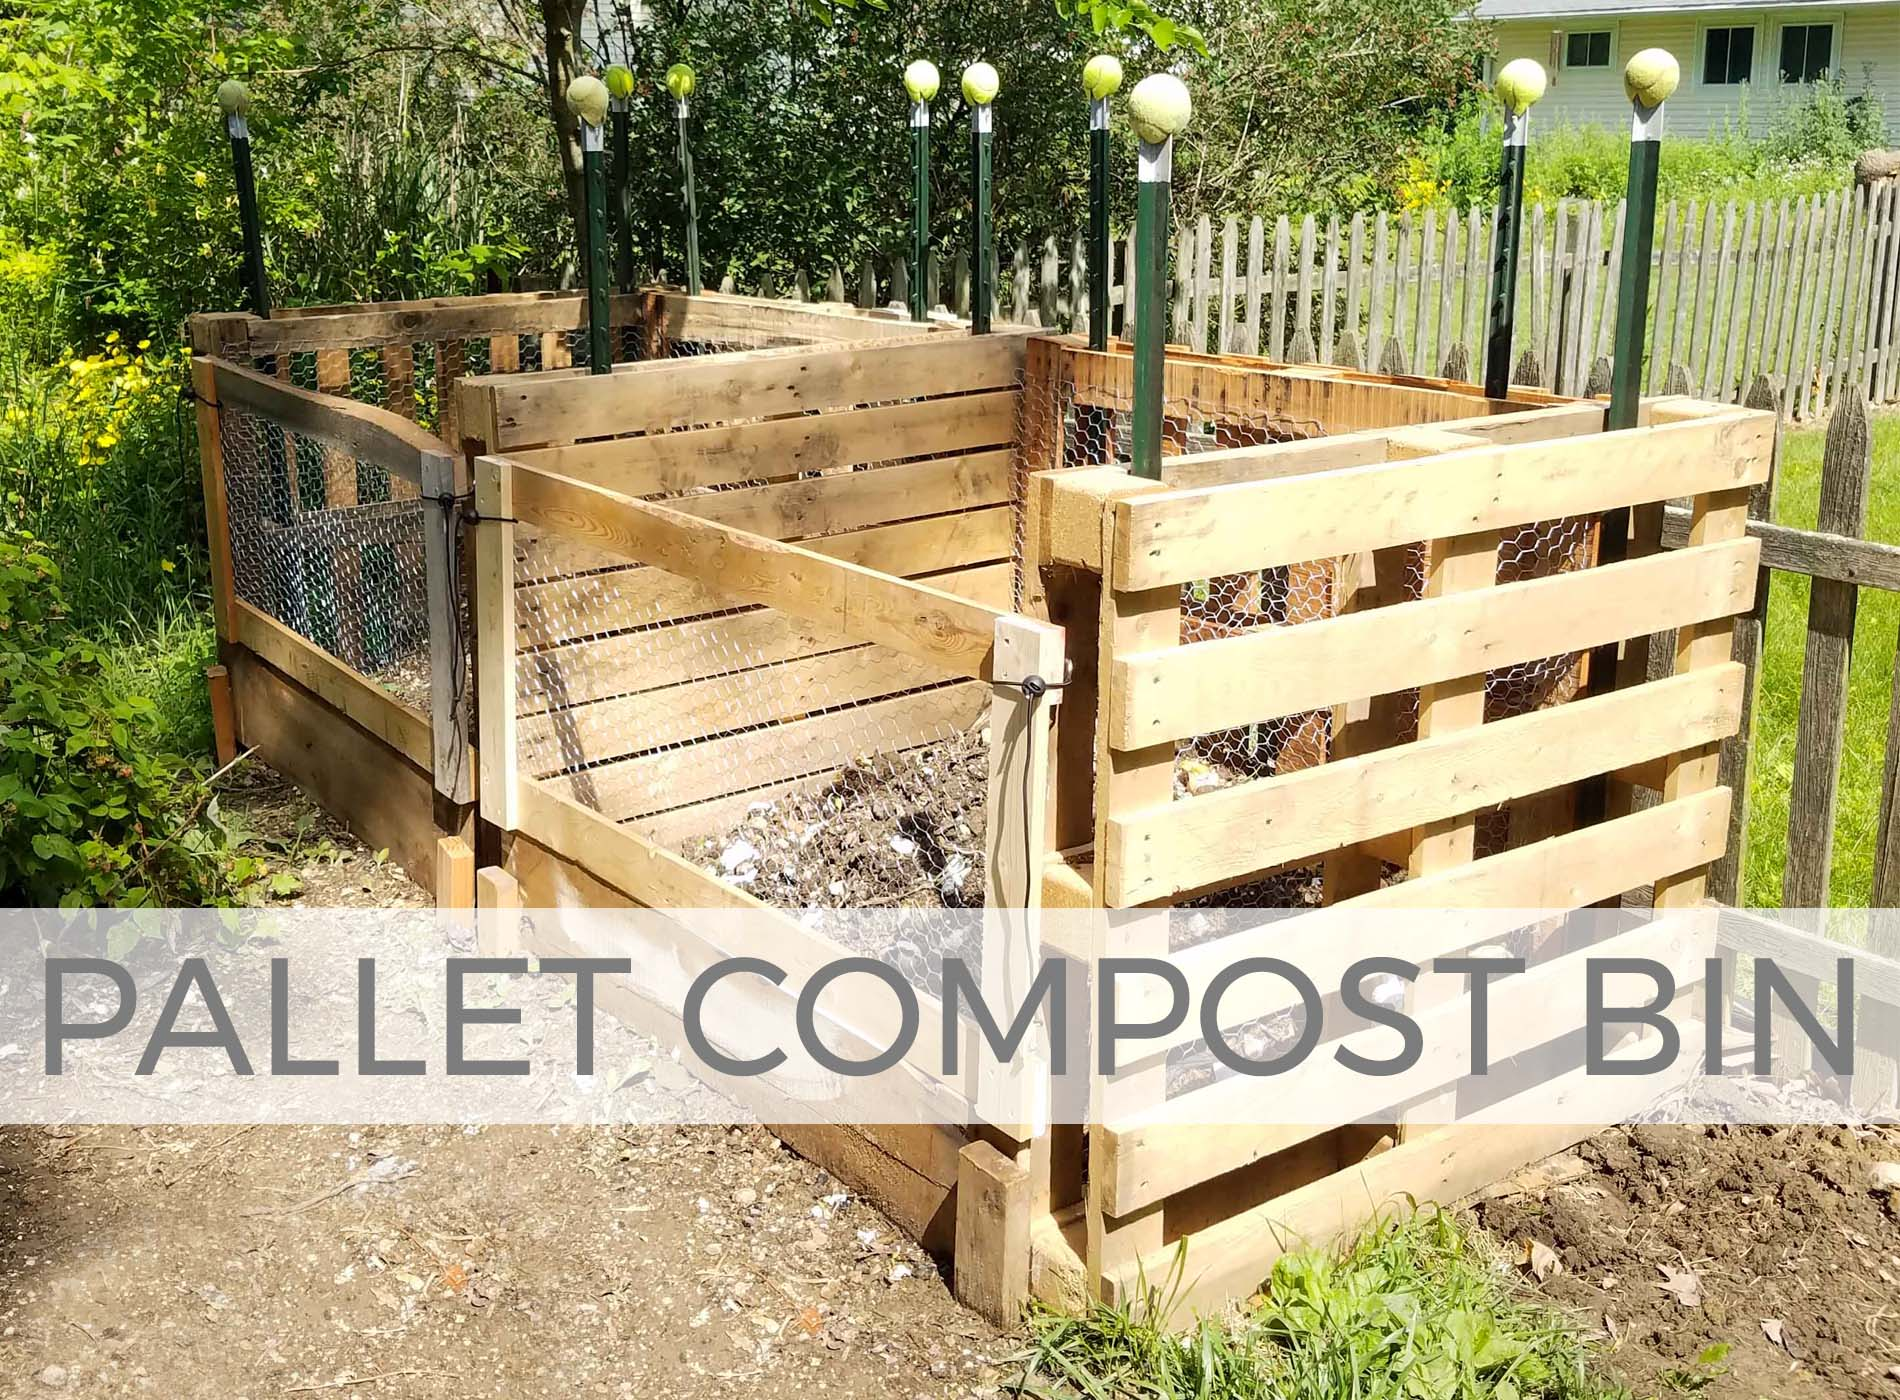 Build a compost bin with pallets | Tutorial by Larissa of Prodigal Pieces | prodigalpieces.com #prodigalpieces